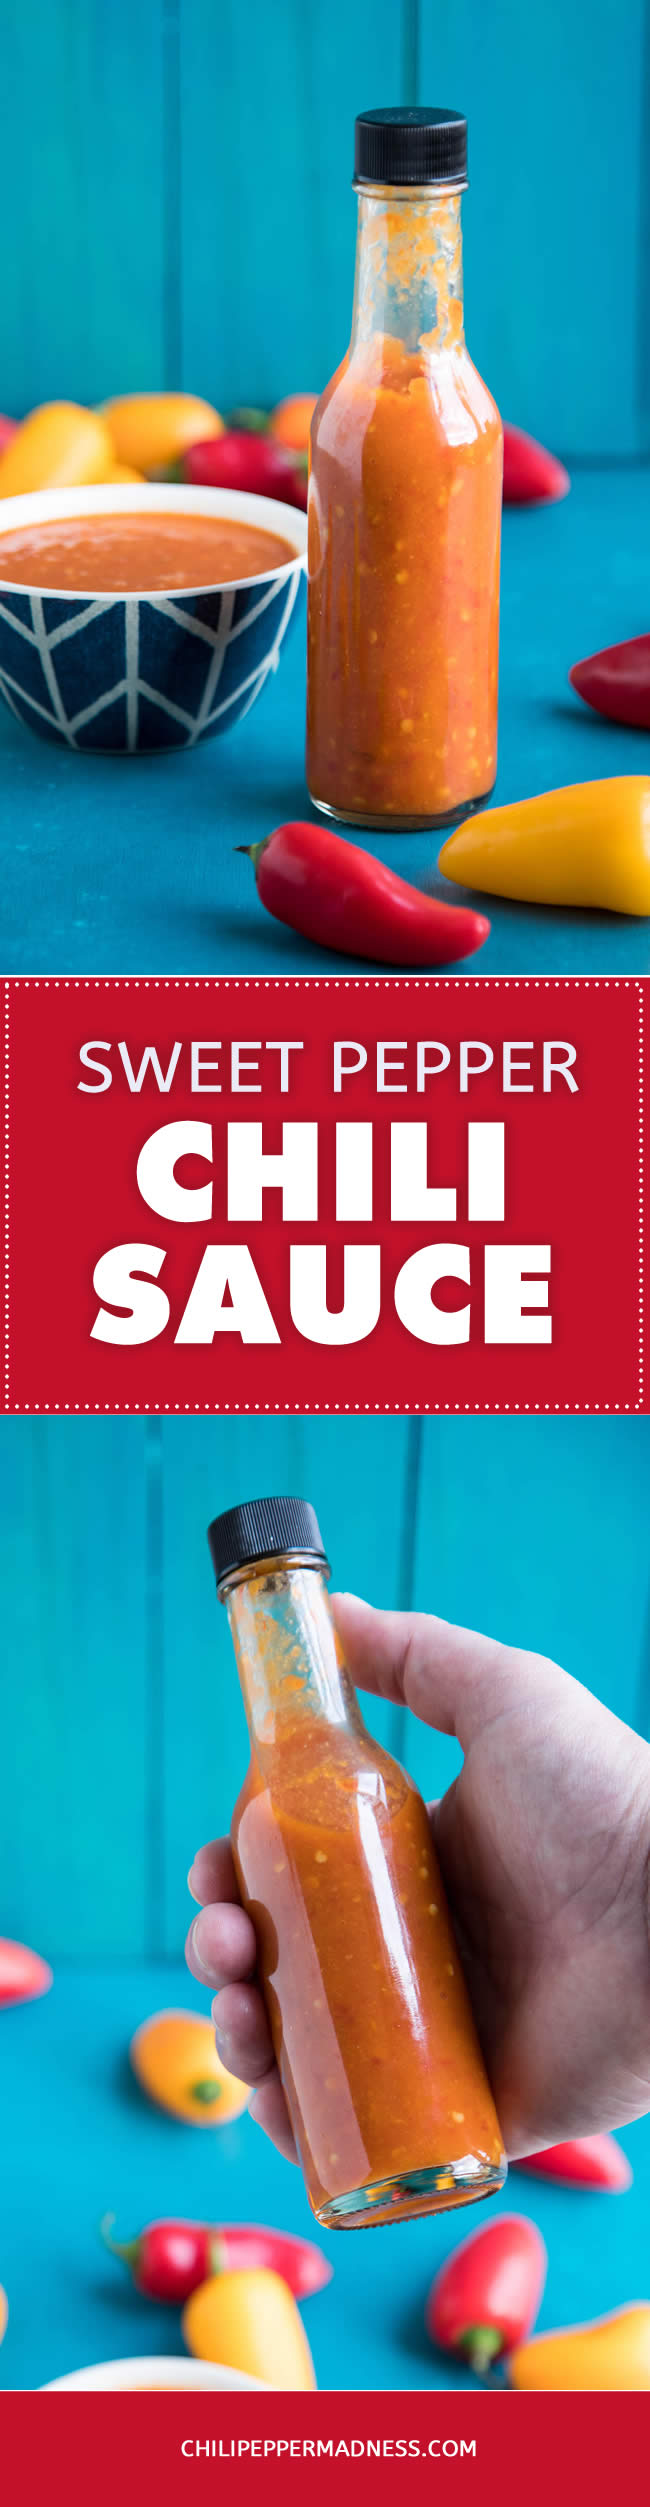 Sweet Pepper Chili Sauce - Recipe